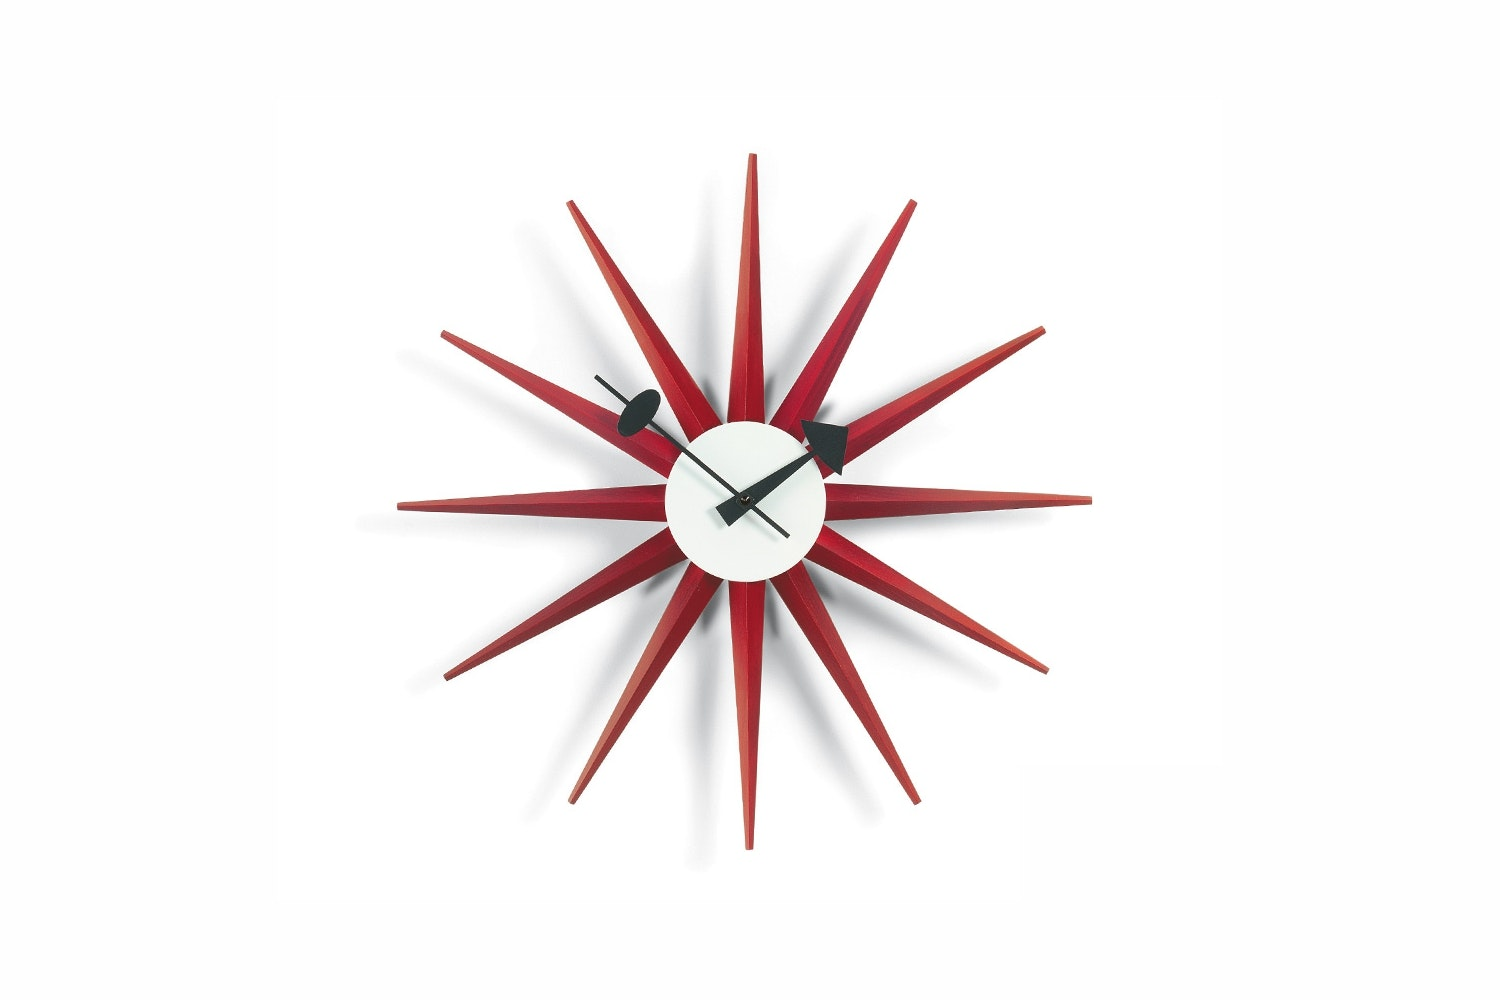 Sunburst Clock by George Nelson for Vitra